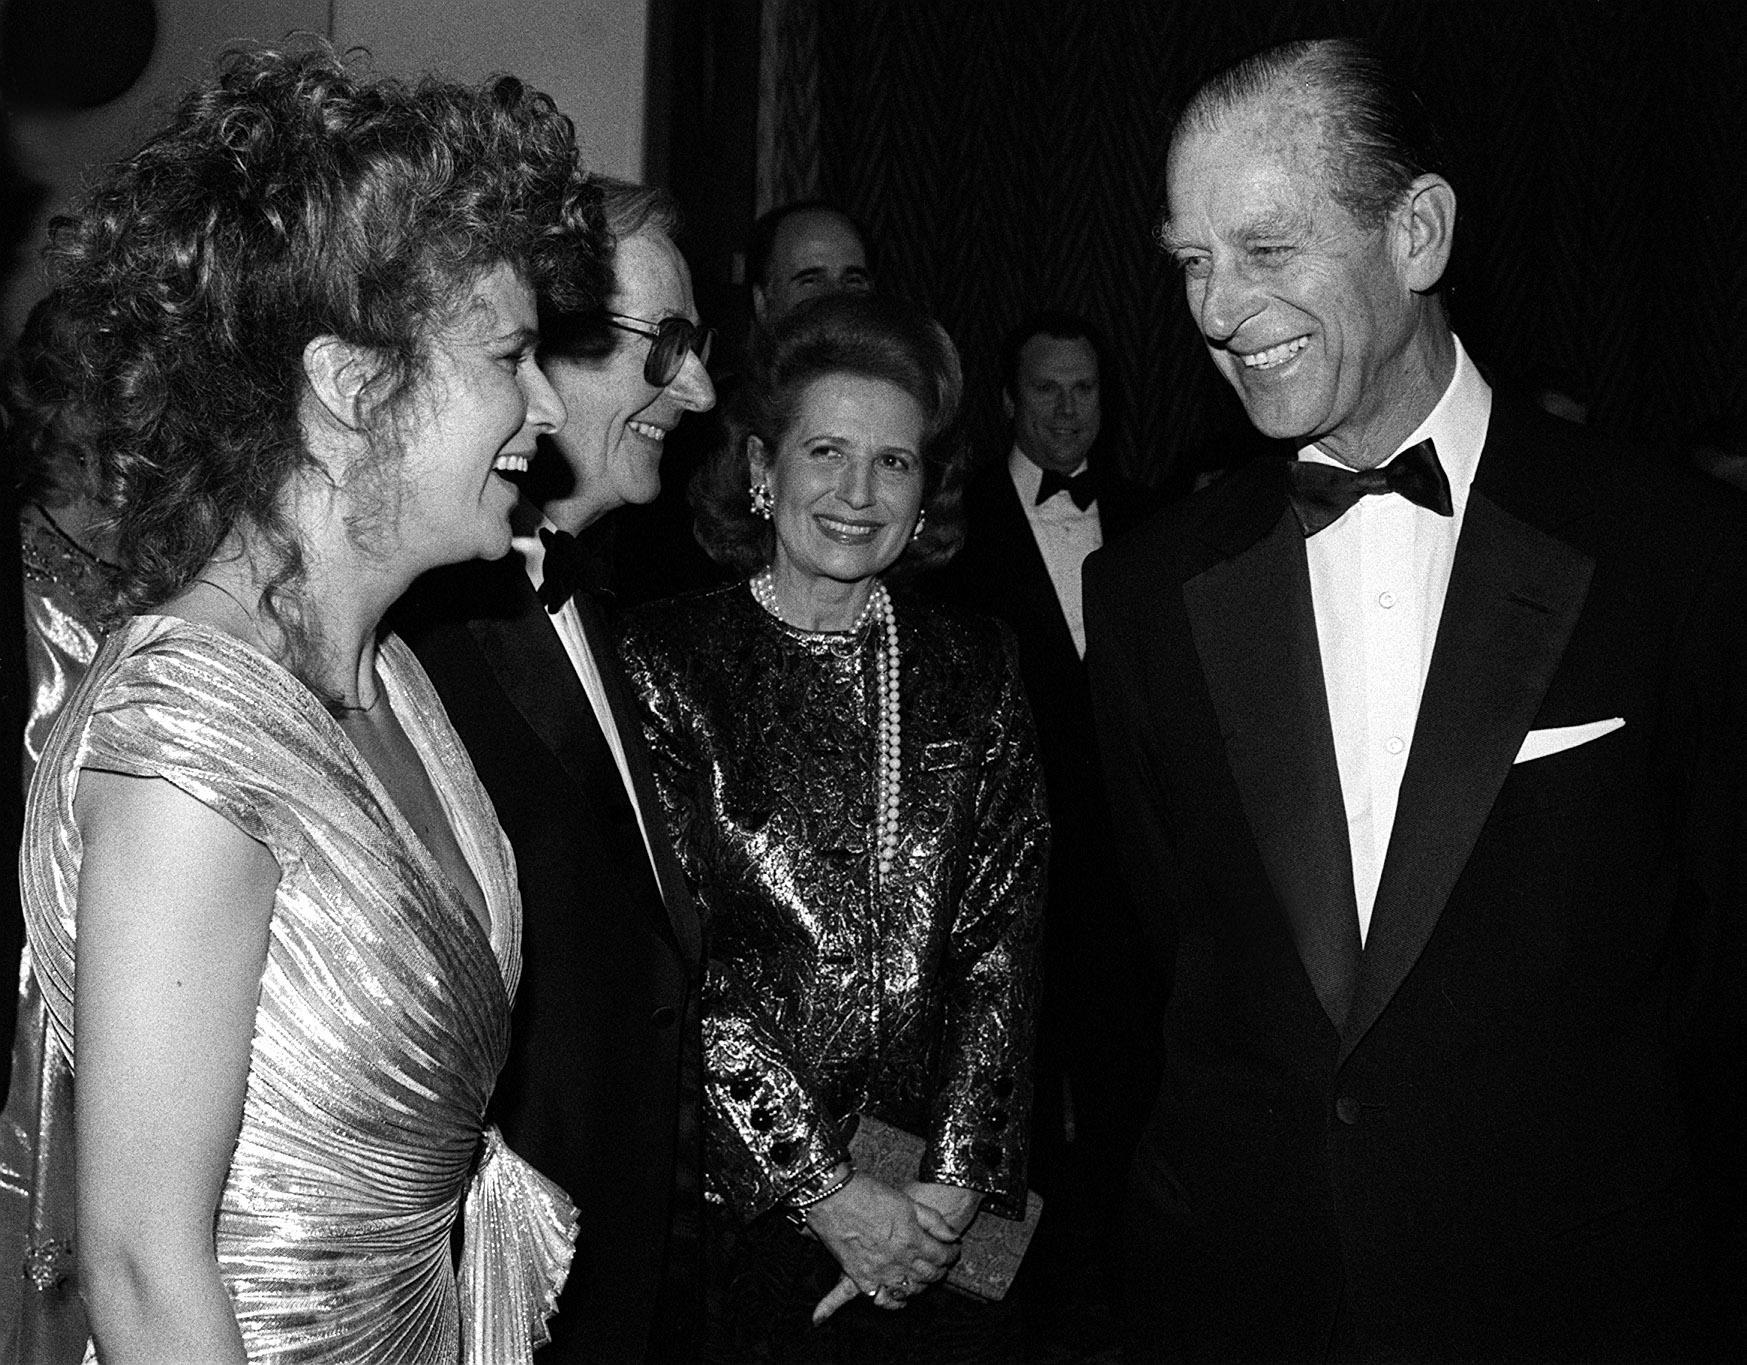 Prince Philip talking to the star of Educating Rita, Julie Walters, when he attended the film's premiere in London. 03/05/1983